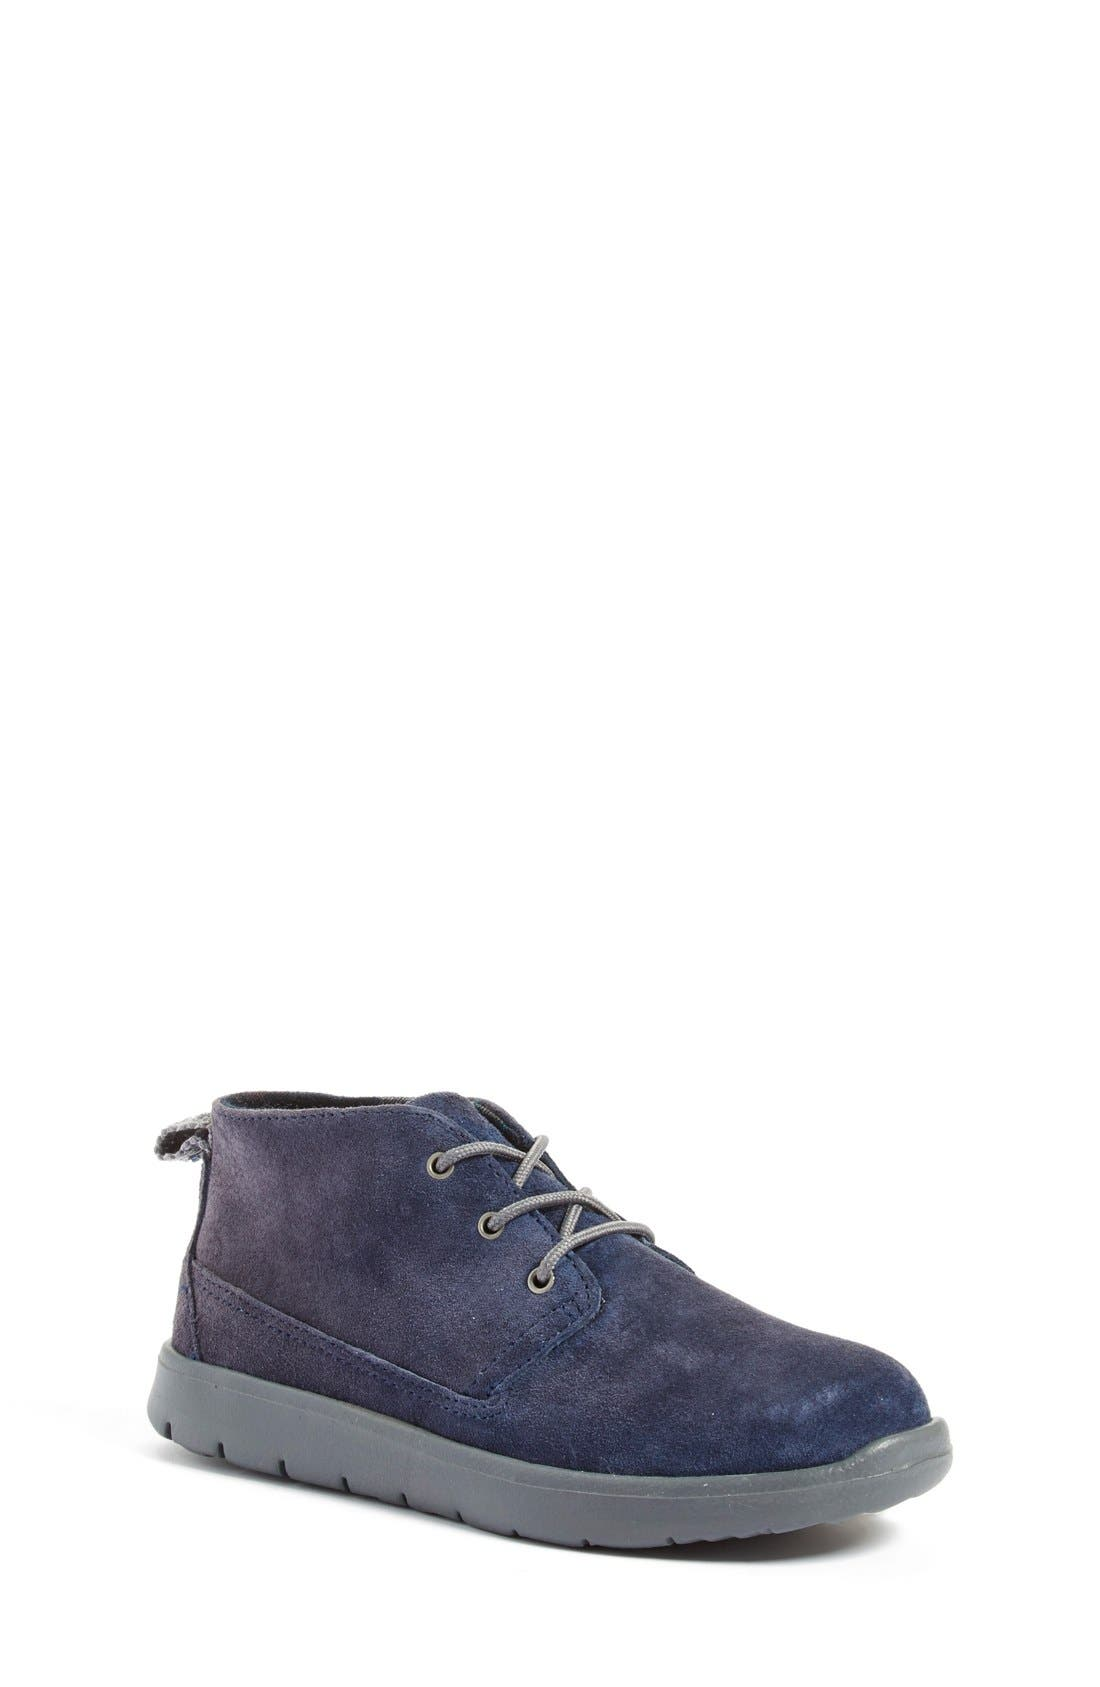 Alternate Image 1 Selected - UGG® Canoe Chukka Sneaker (Toddler, Little Kid & Big Kid)